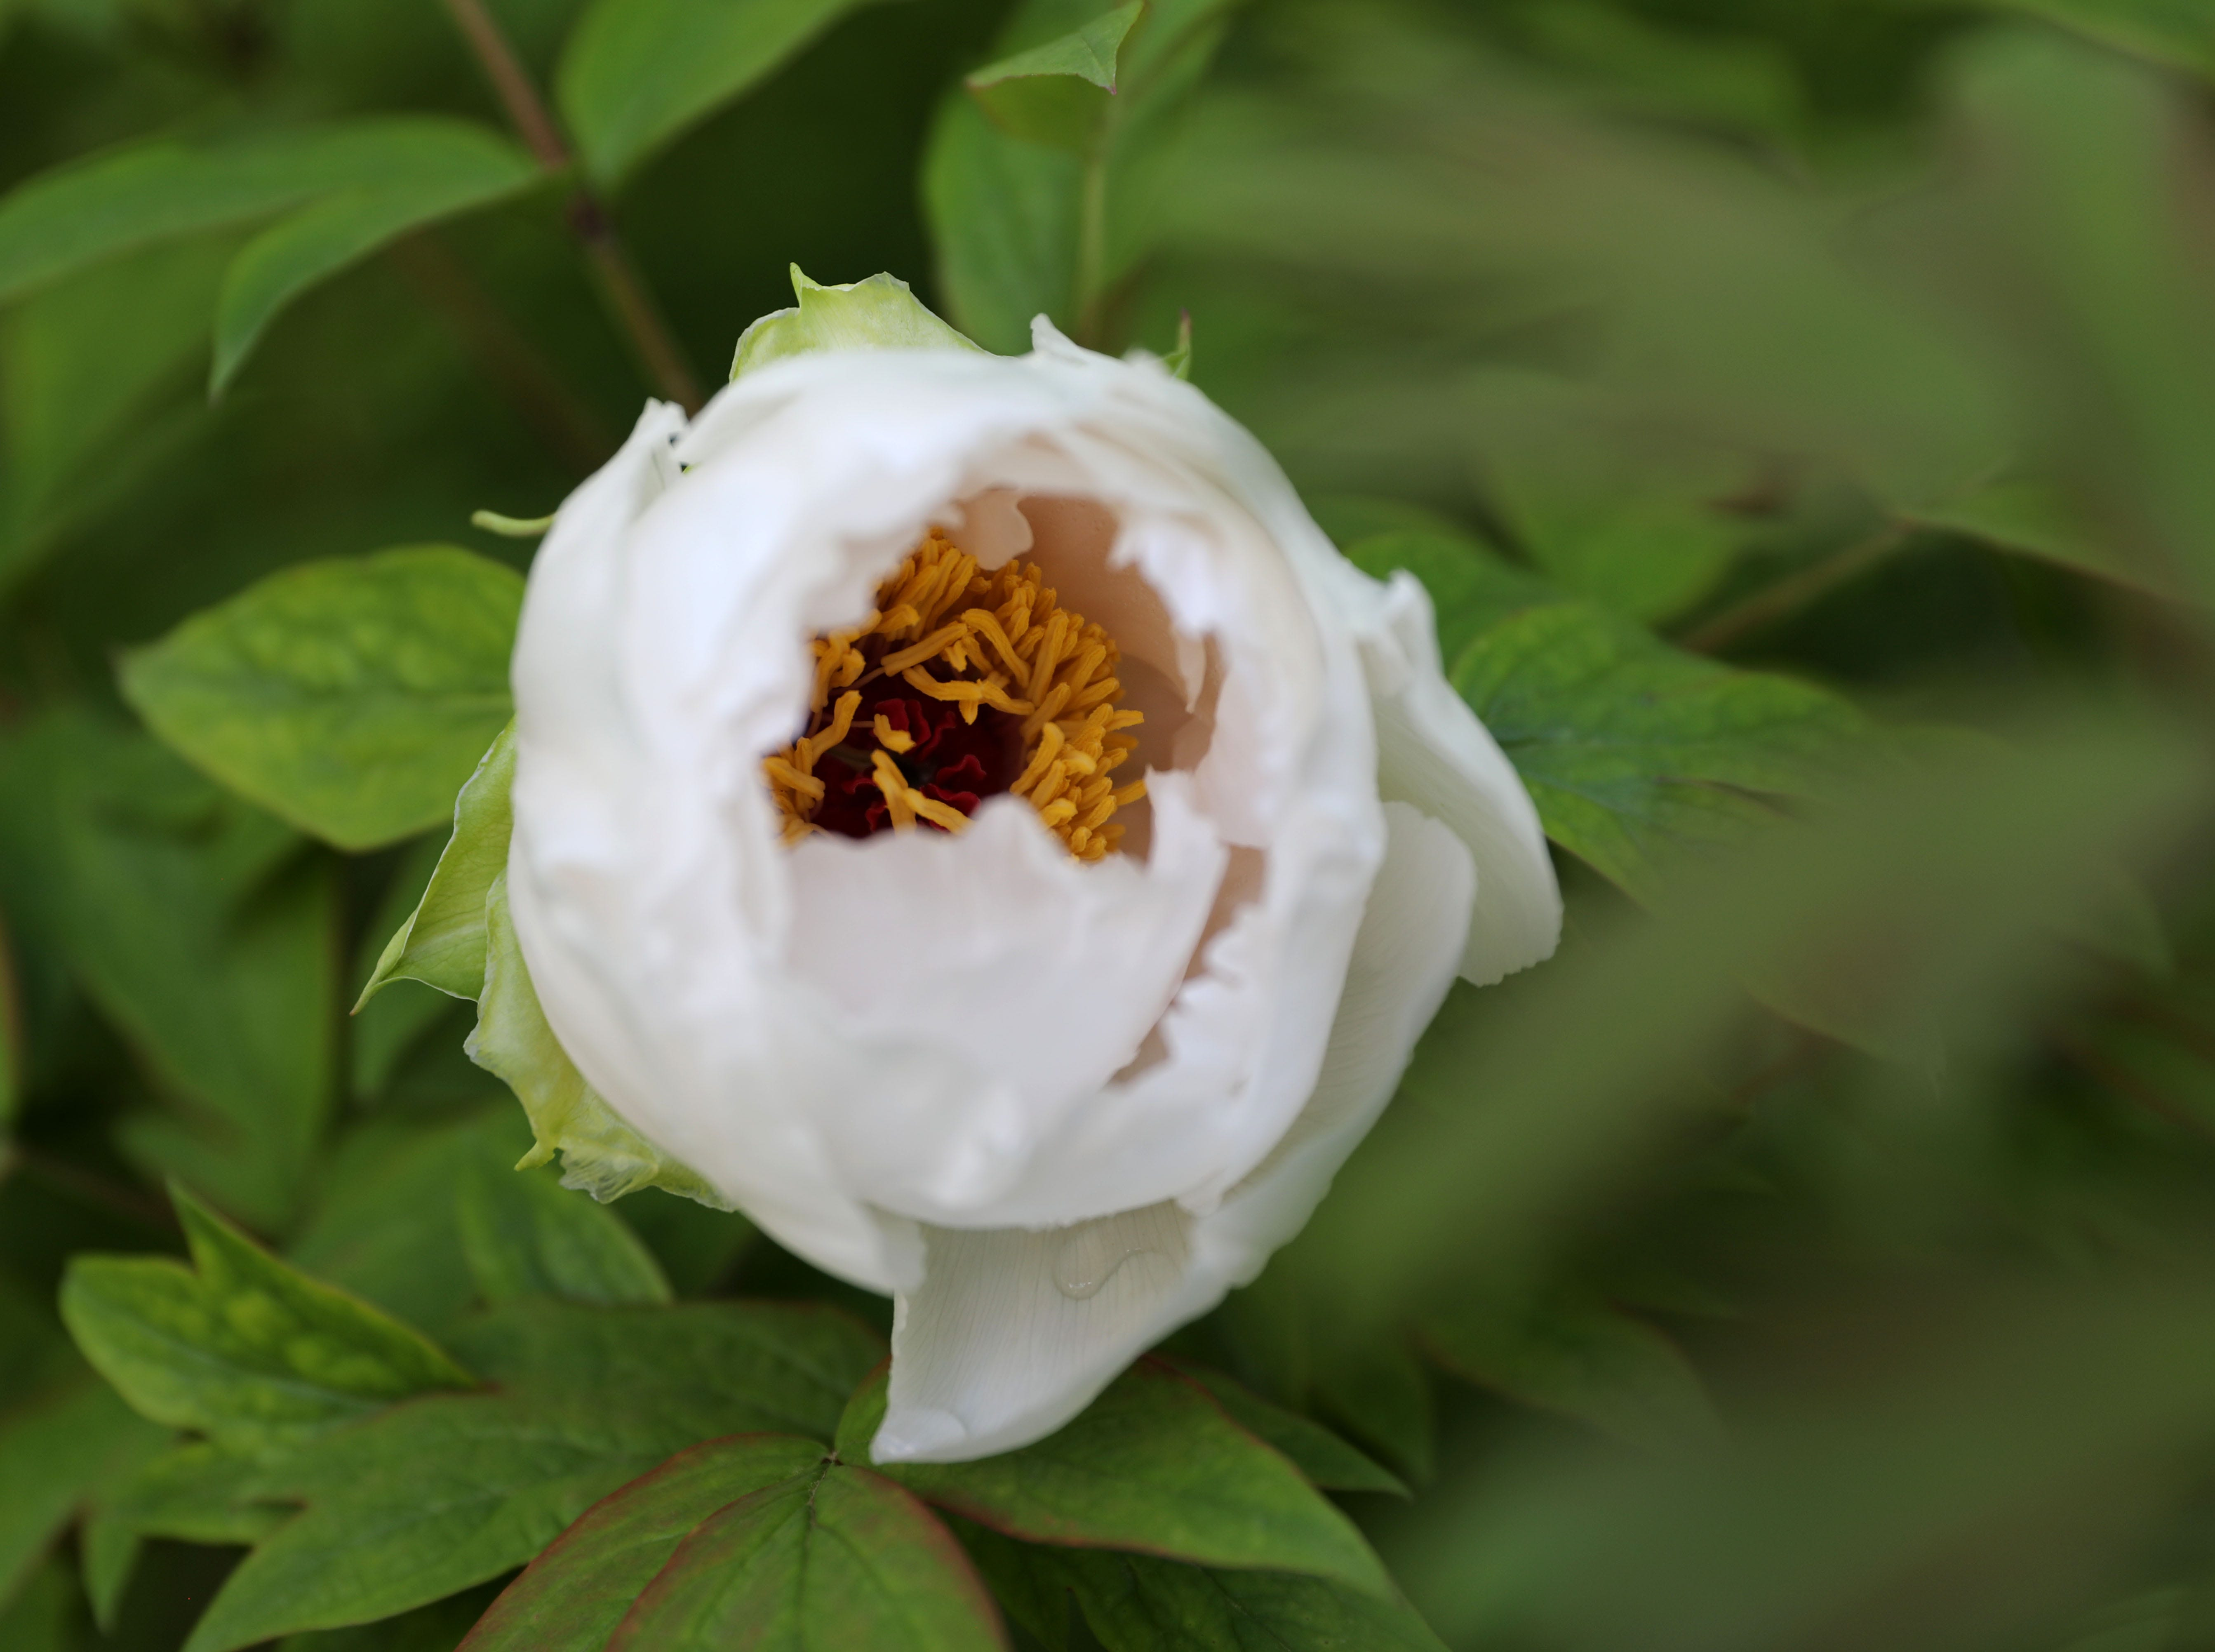 A peony begins to bloom at Rockefeller State Park Preserve in Pleasantville May 15, 2019. The 500 tree plants were a gift from Yatsuka Cho, a small town in Japan, to the Friends of the Rockefeller State Park Preserve to help unite the two countries after September 11.